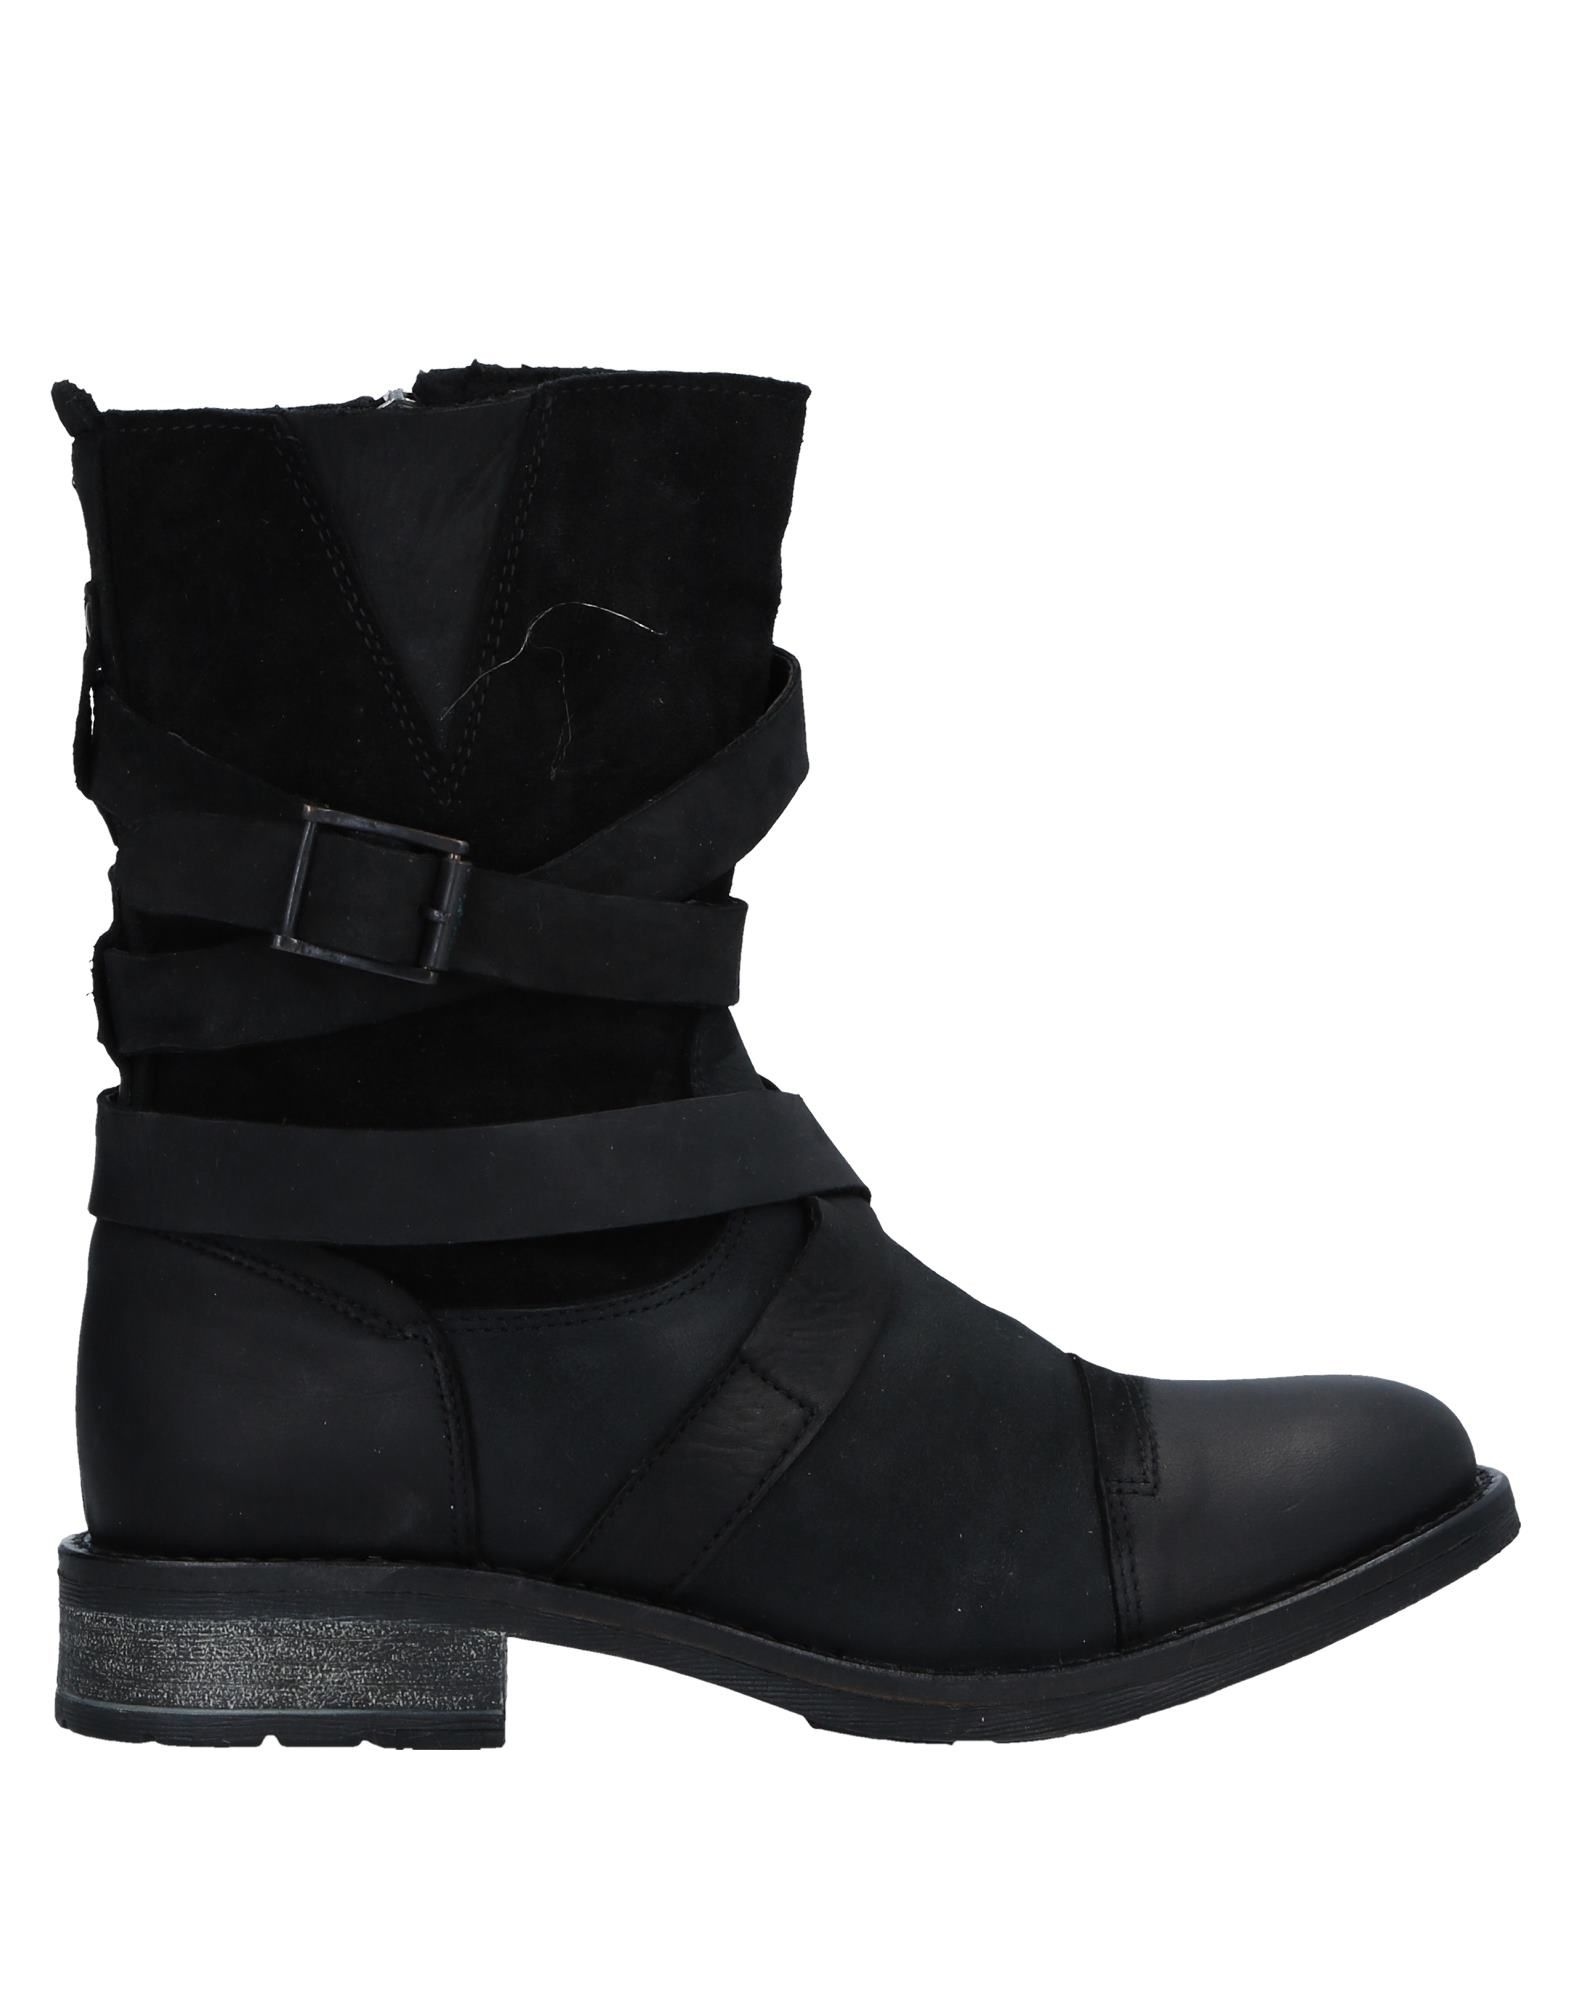 MDK Ankle Boot in Black